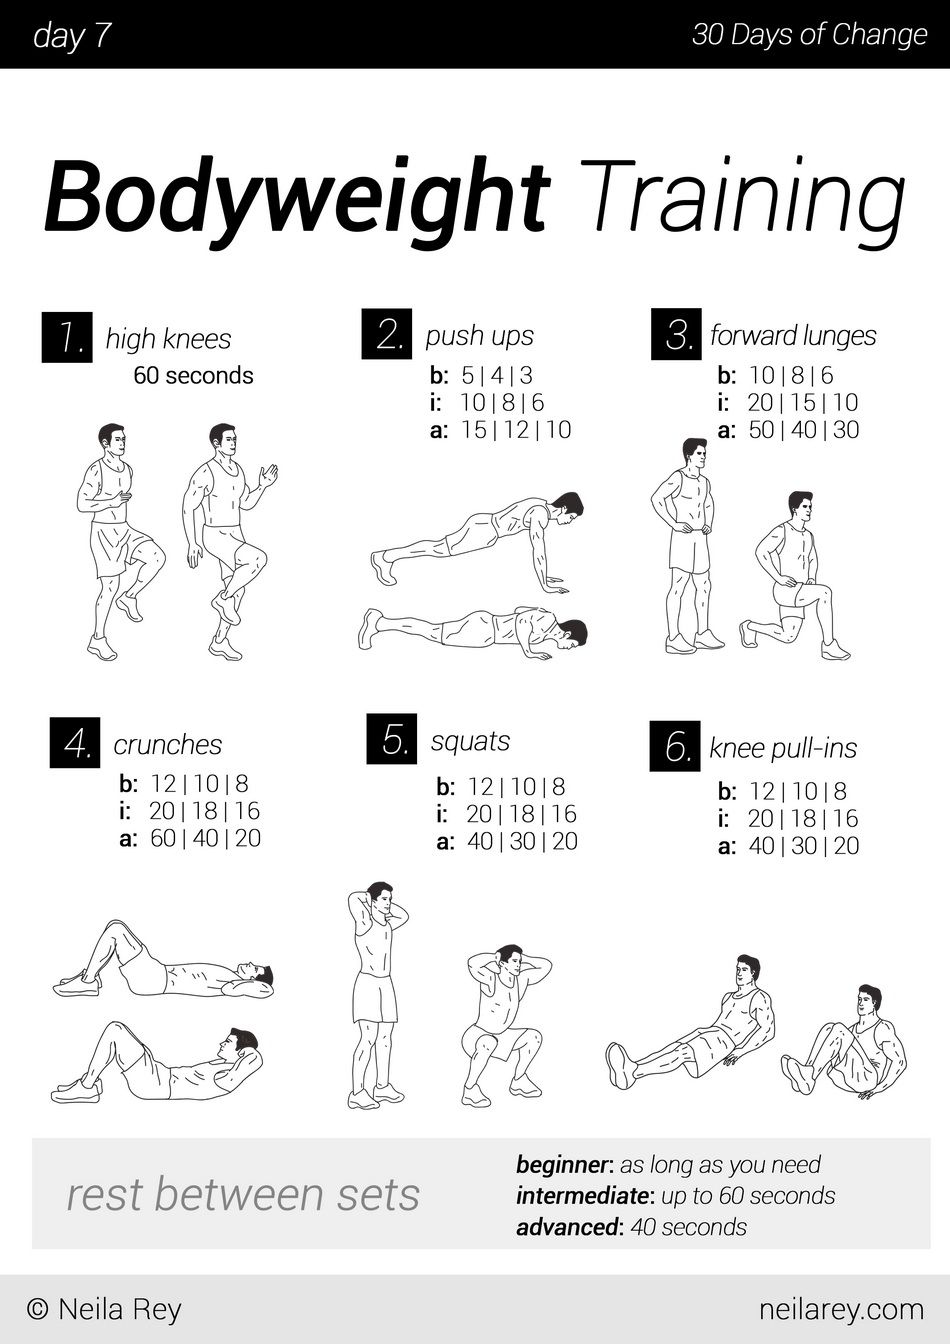 Bodyweight Training Day 7